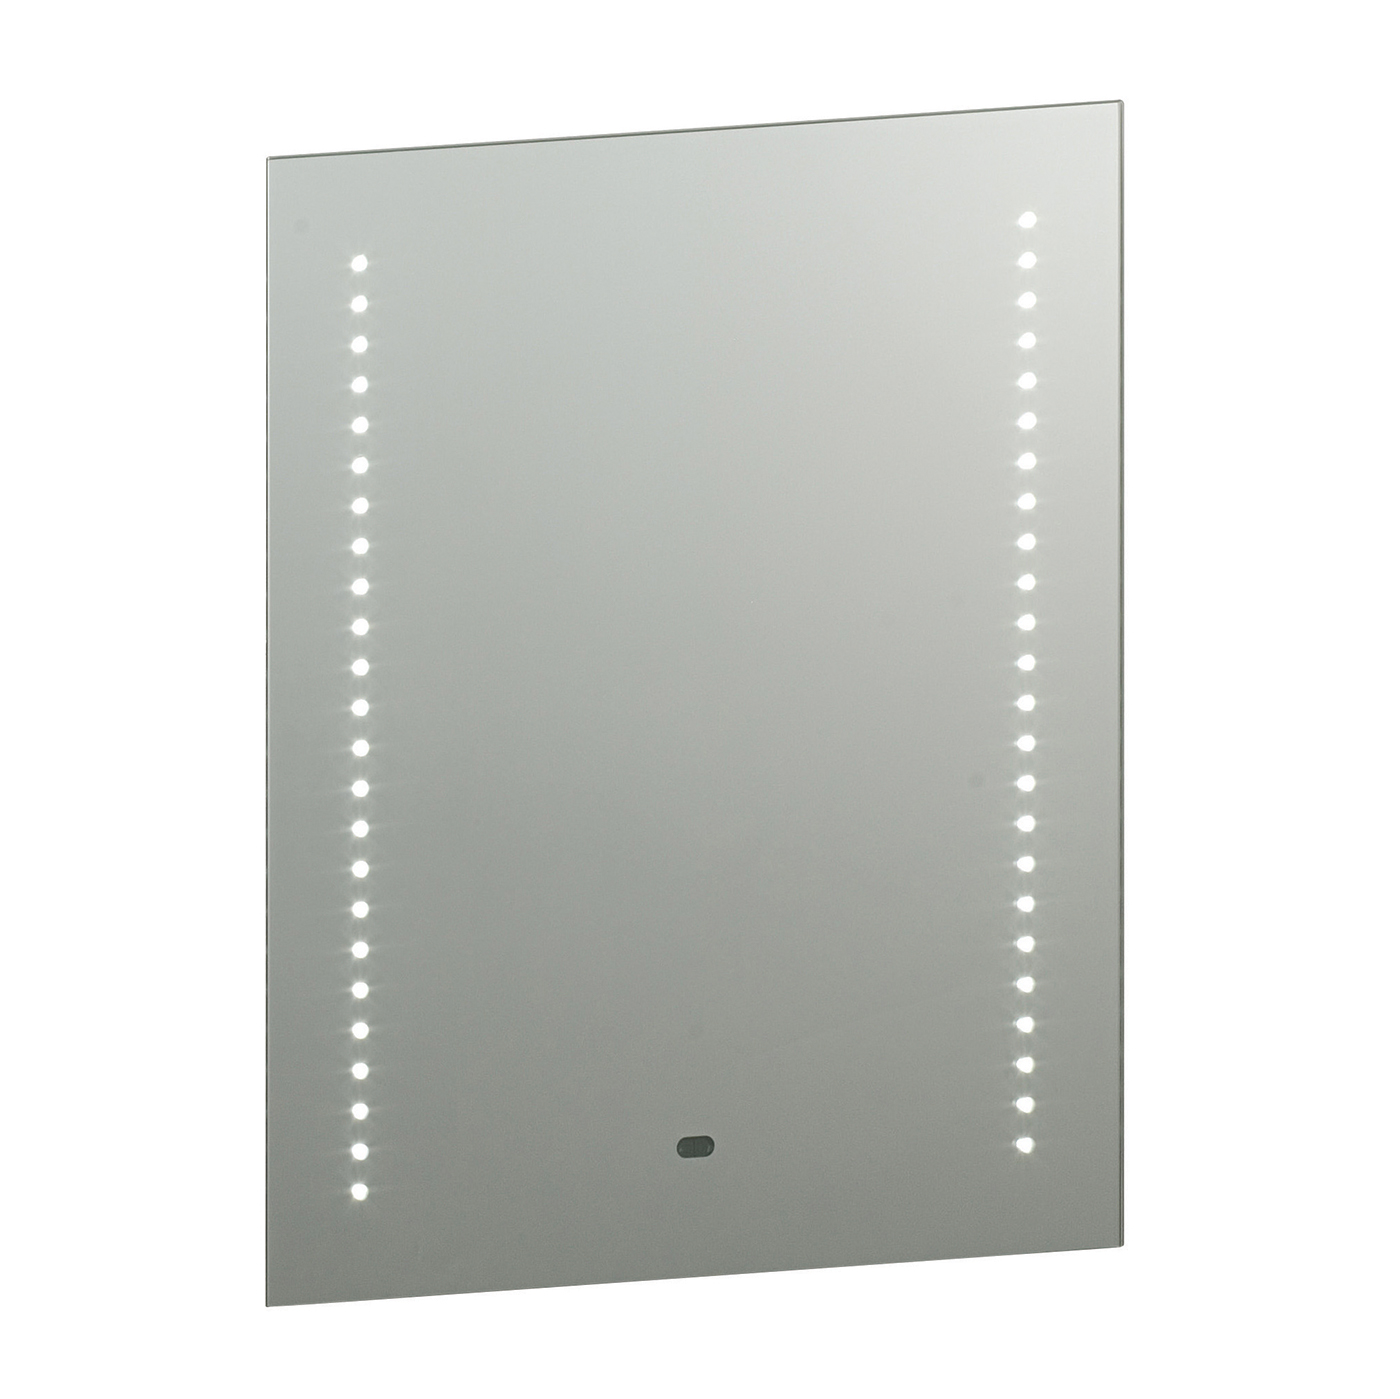 Endon Spegel LED shaver bathroom mirror IP44 4W sensor H: 600mm W: 500mm Thumbnail 1